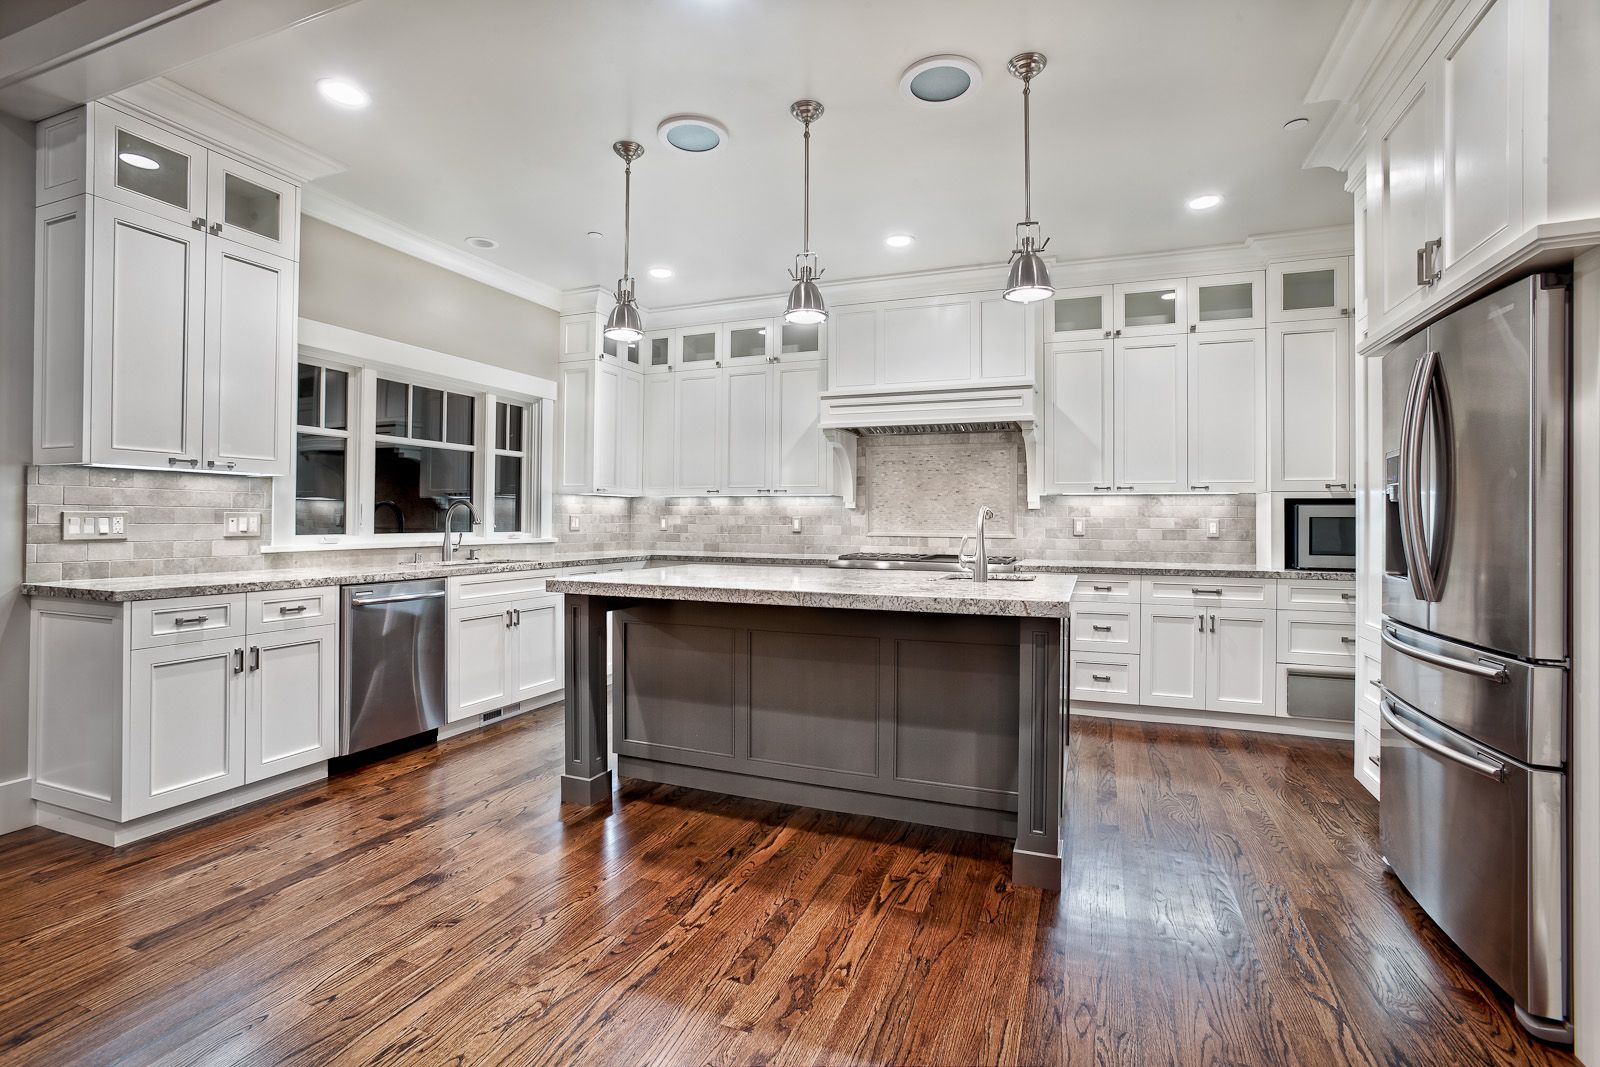 Classic White Cabinets Upper Cabinets Pulls Horizontal Should I Paint The Counter Bar Gray White Modern Kitchen White Kitchen Design Kitchen Cabinets Decor